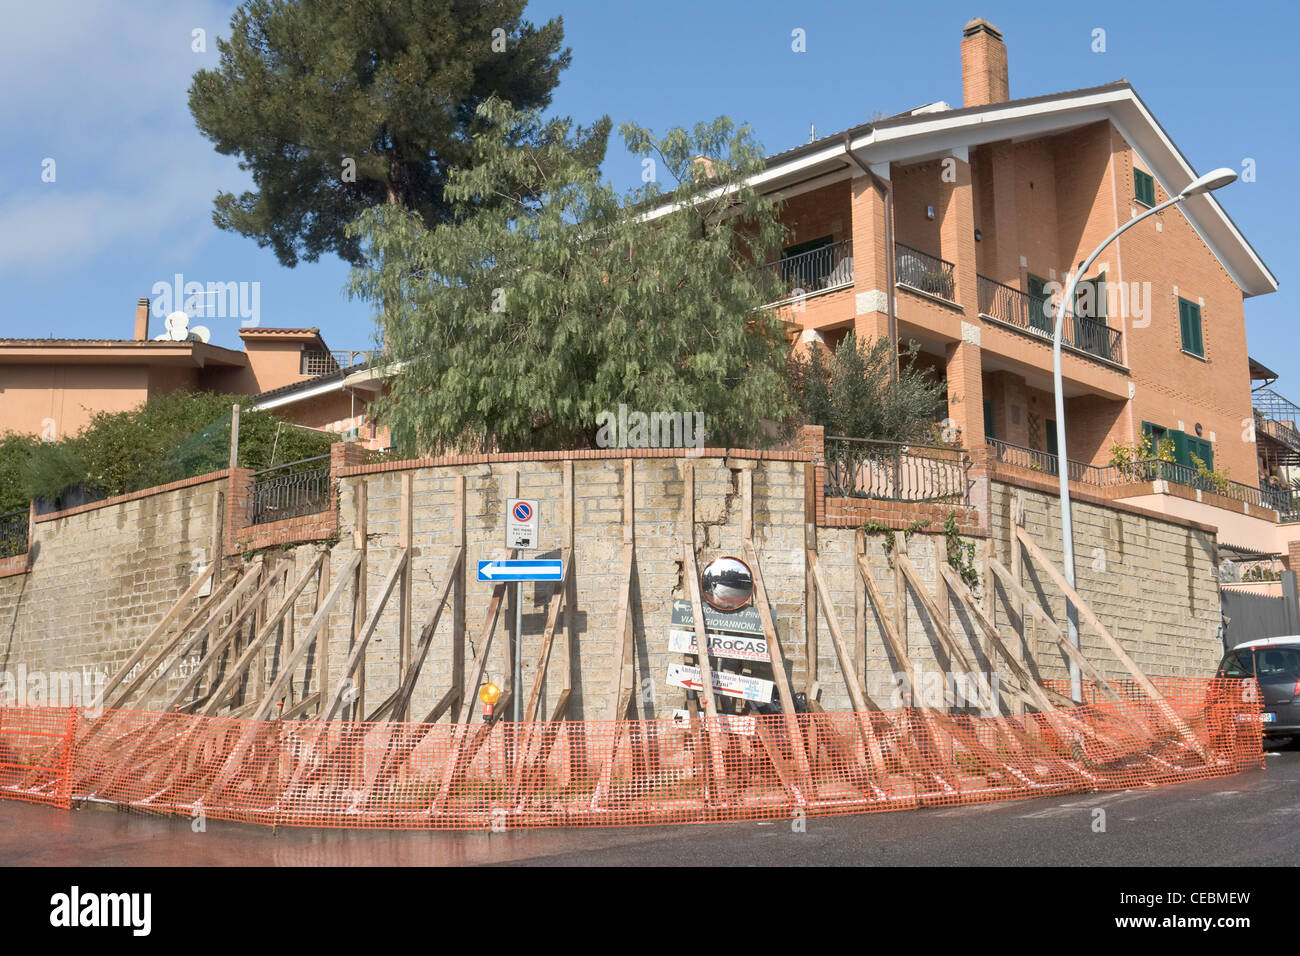 Temporary wooden support for an unsafe wall in Rome, Italy - Stock Image